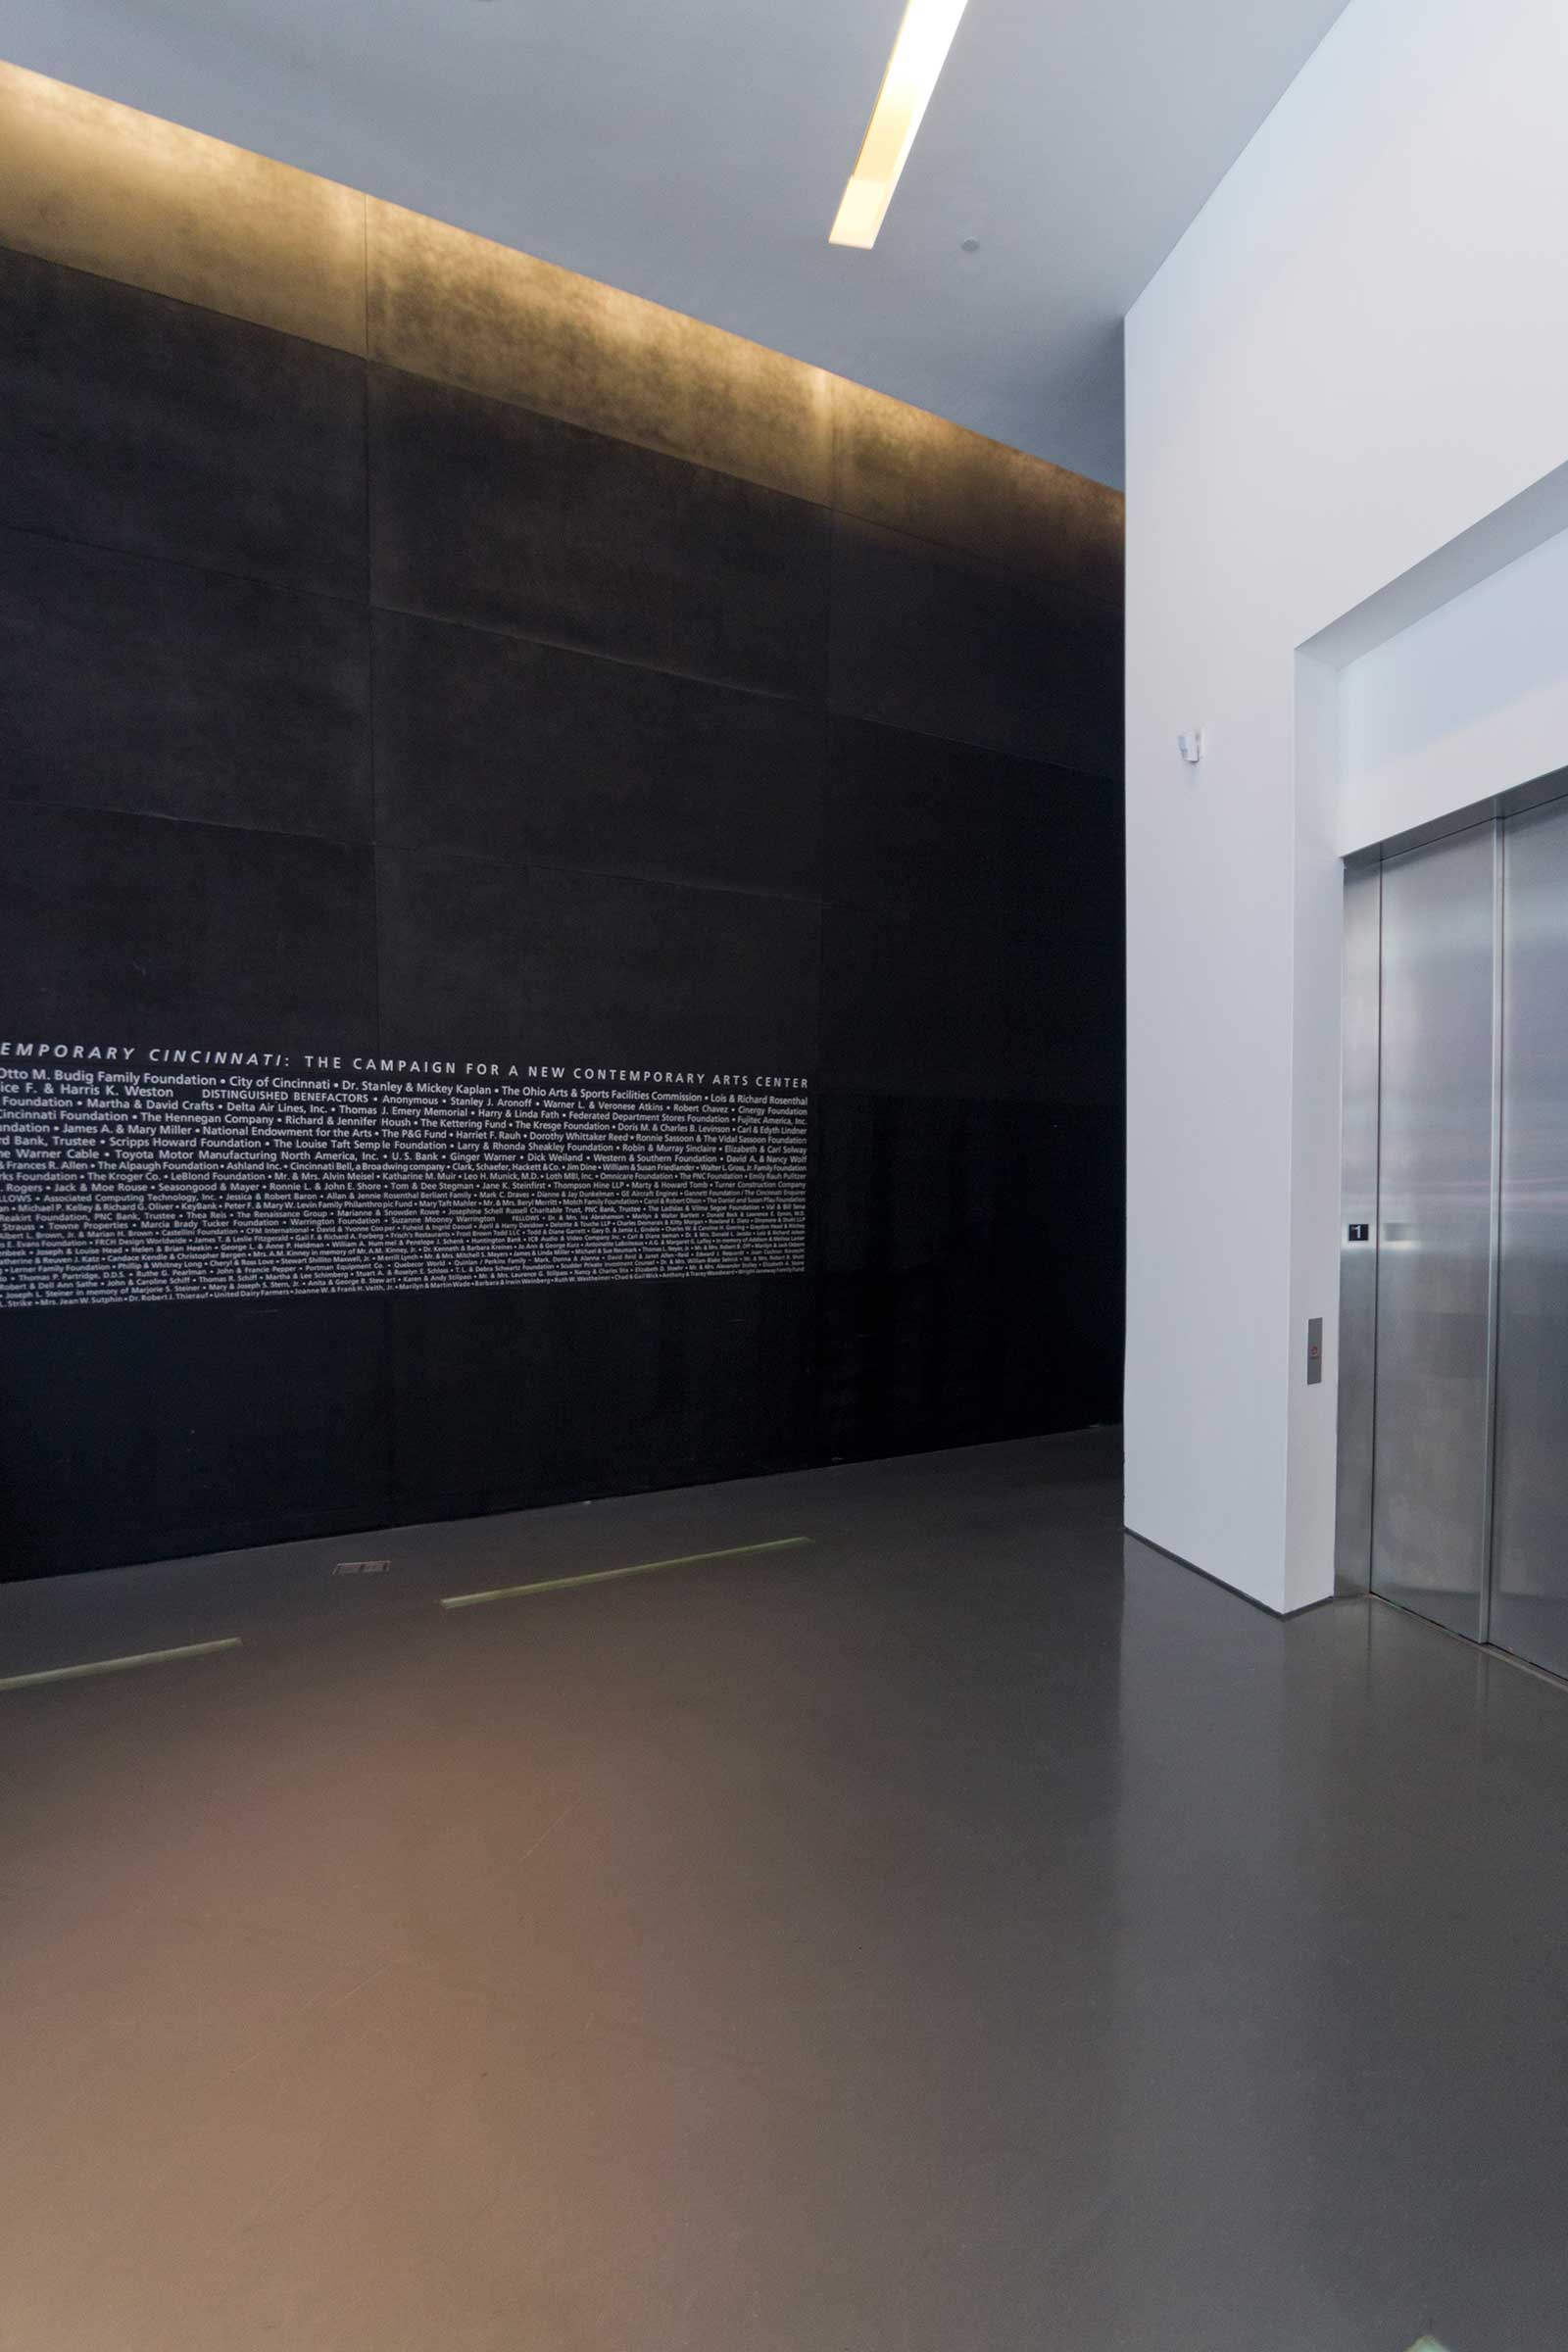 Interior photograph of the Lois & Richard Rosenthal Center for Contemporary Art.